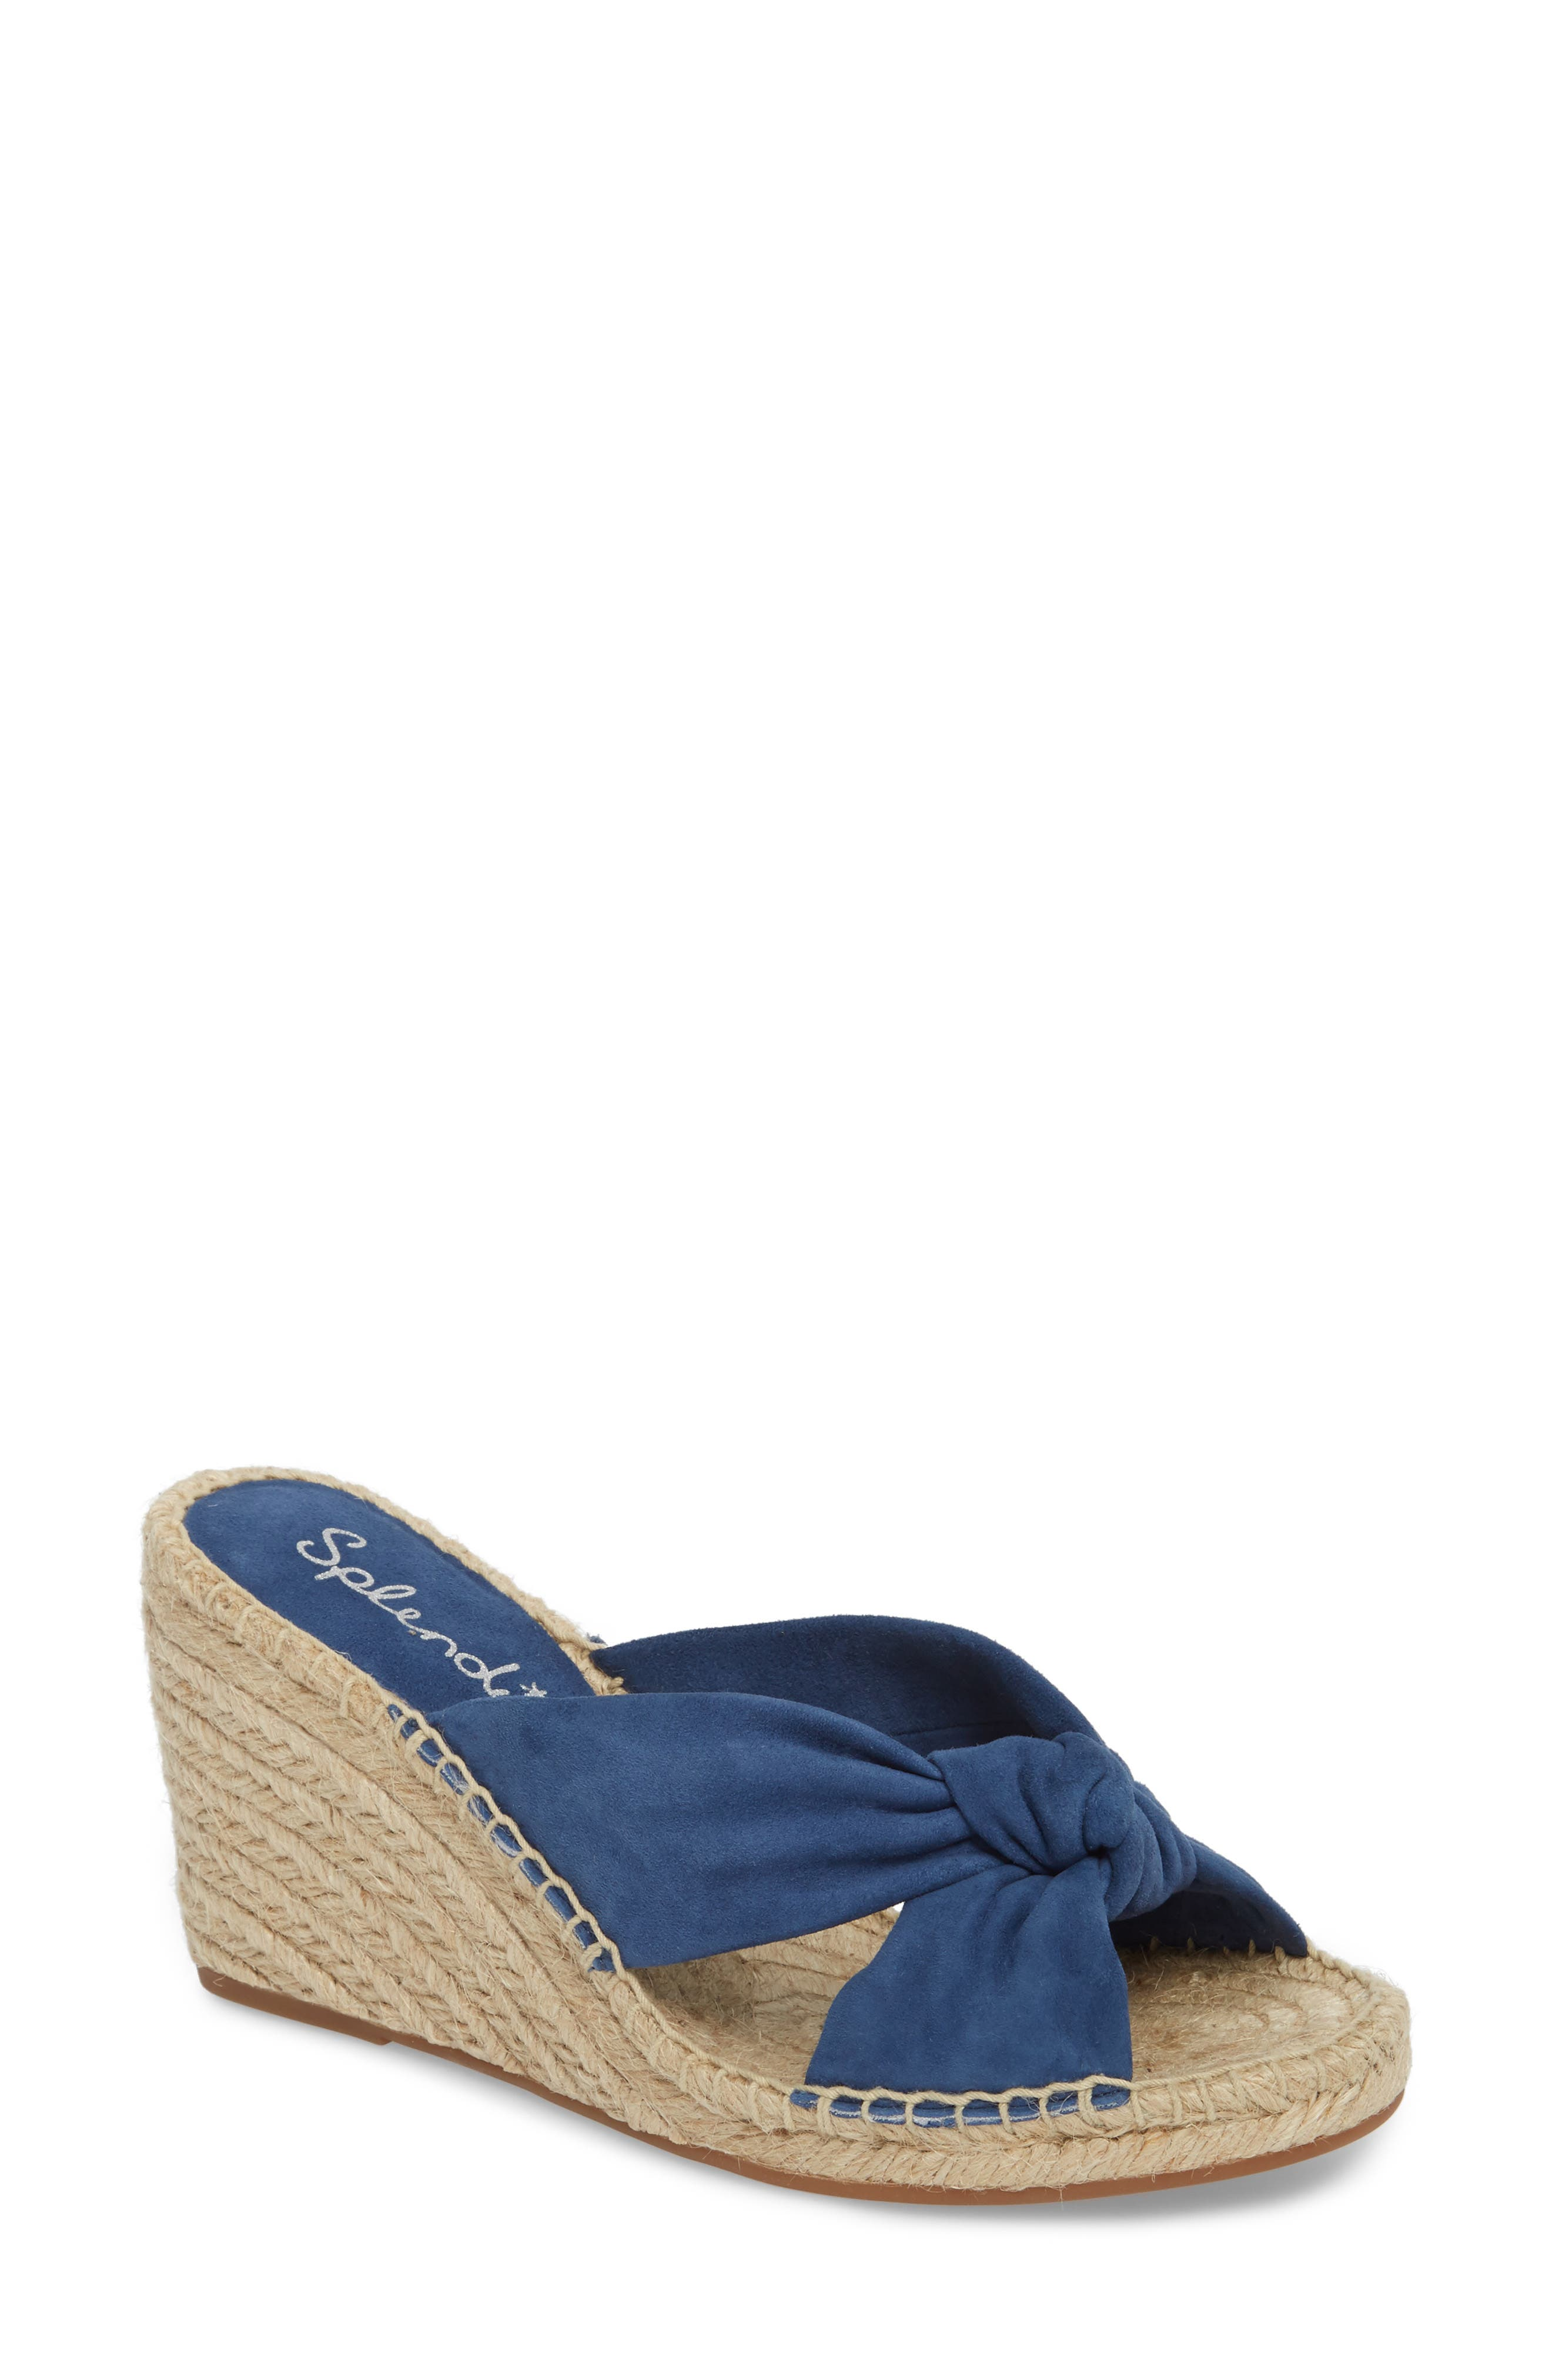 Bautista Knotted Wedge Sandal,                             Main thumbnail 1, color,                             DENIM FABRIC